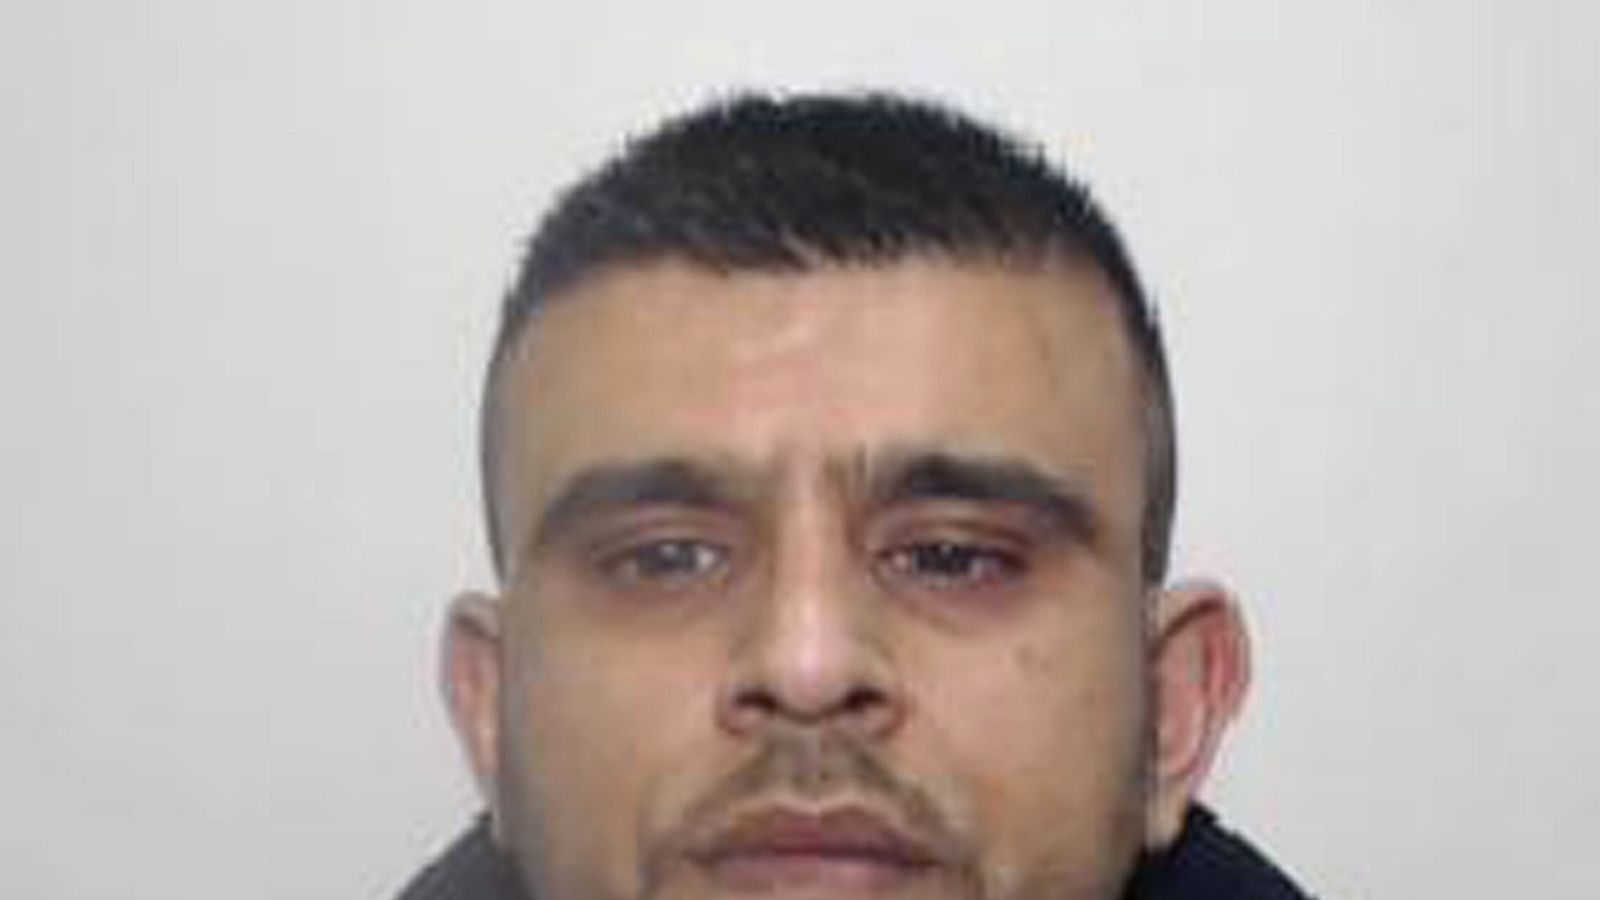 Convicted rapist Choudhry Ikhalaq Hussain will now face extradition to the UK